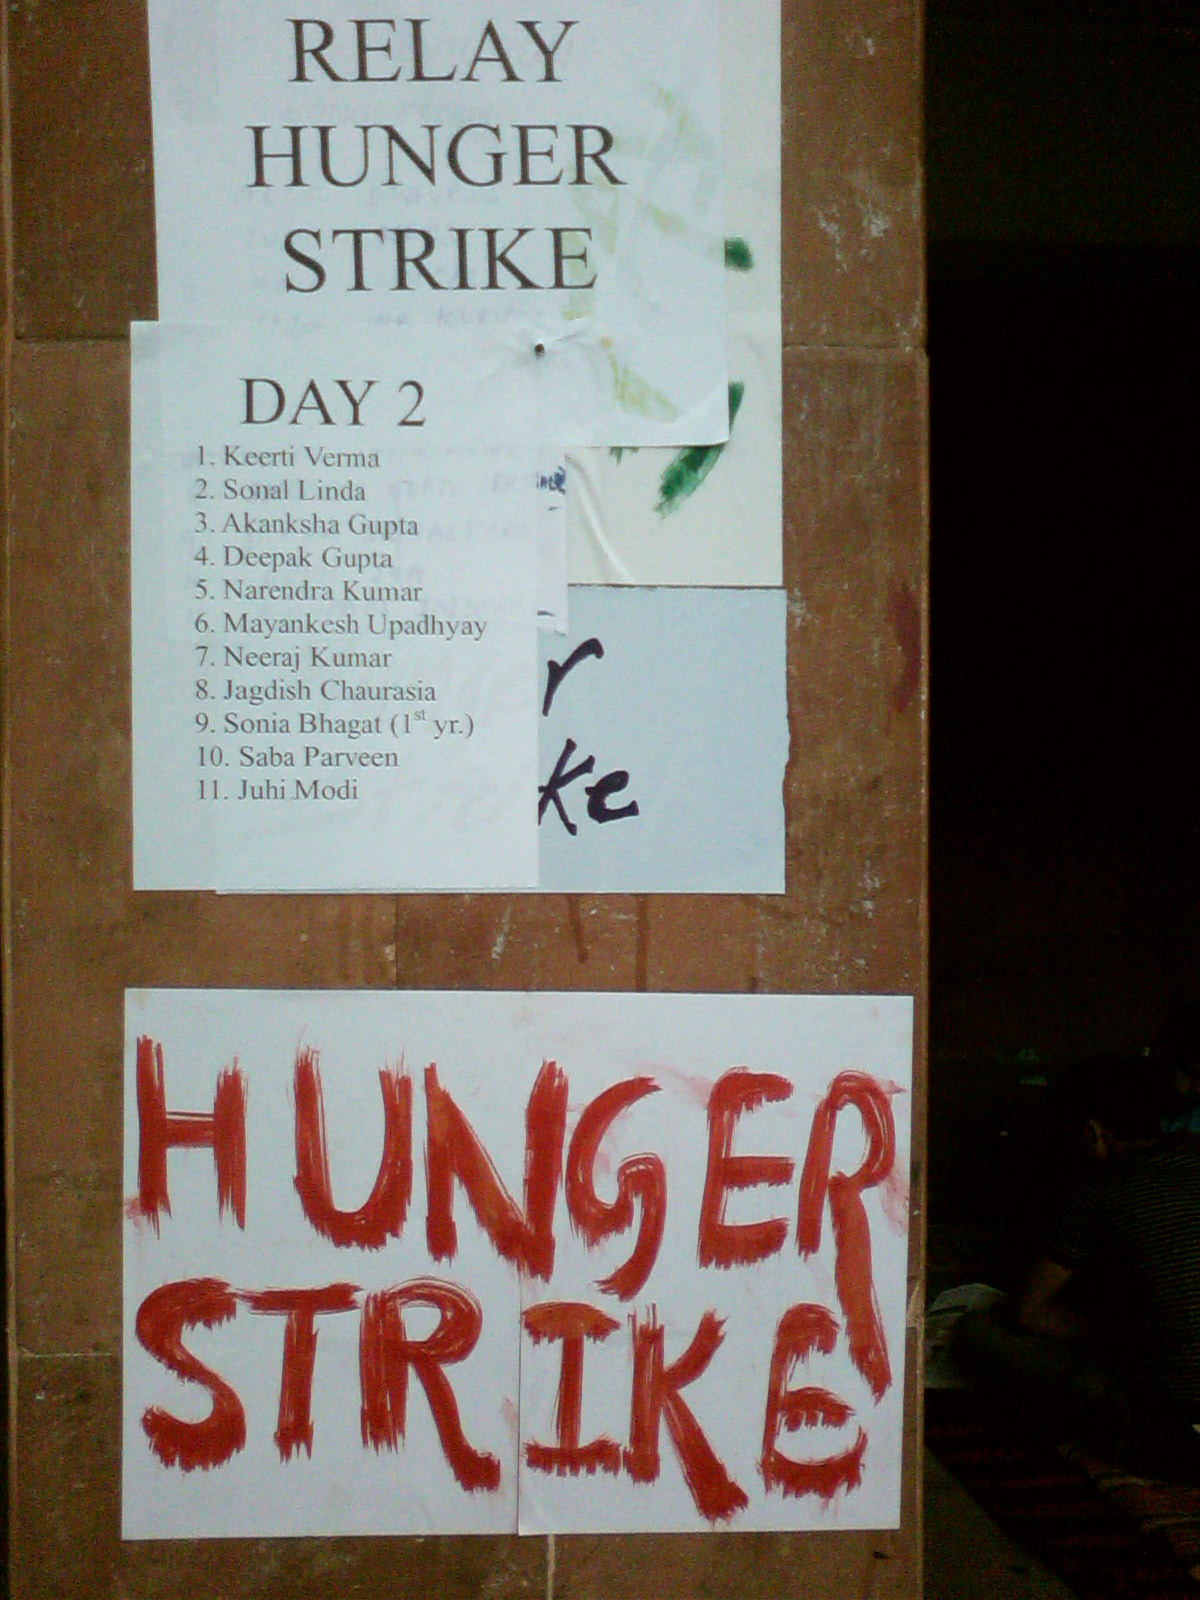 the HUNGER STRIKERS